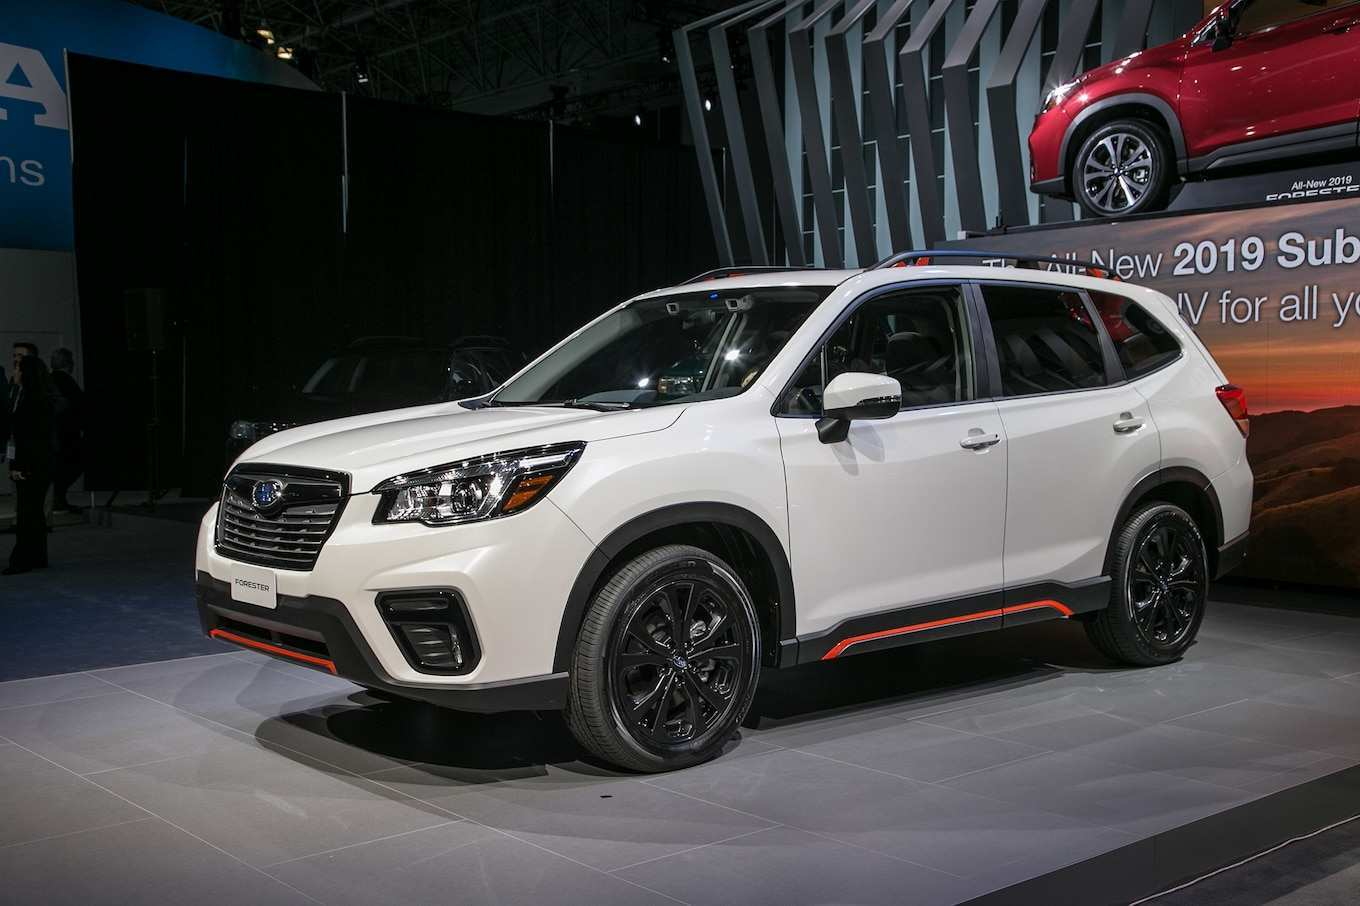 15 Best Review Subaru Forester 2019 Gas Mileage New Review for Subaru Forester 2019 Gas Mileage